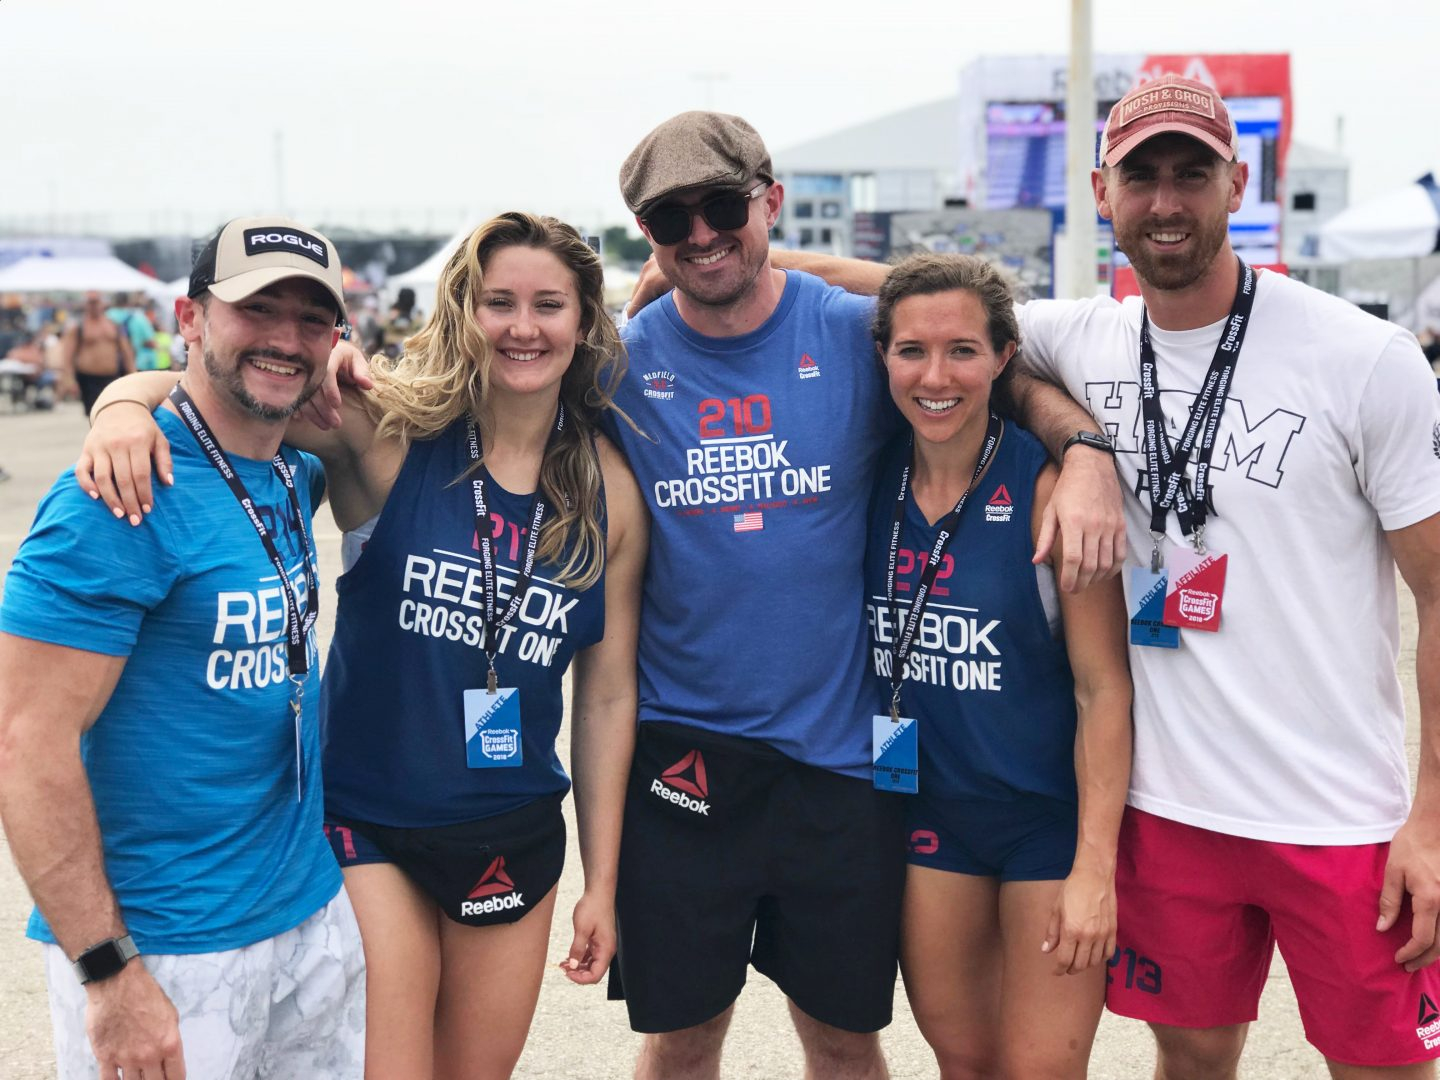 A group of three men and two women in CrossFit Gear are smiling into the camera. leadership, team, teamwork, sports, fitness, motivation, Reebok, GamePlan A